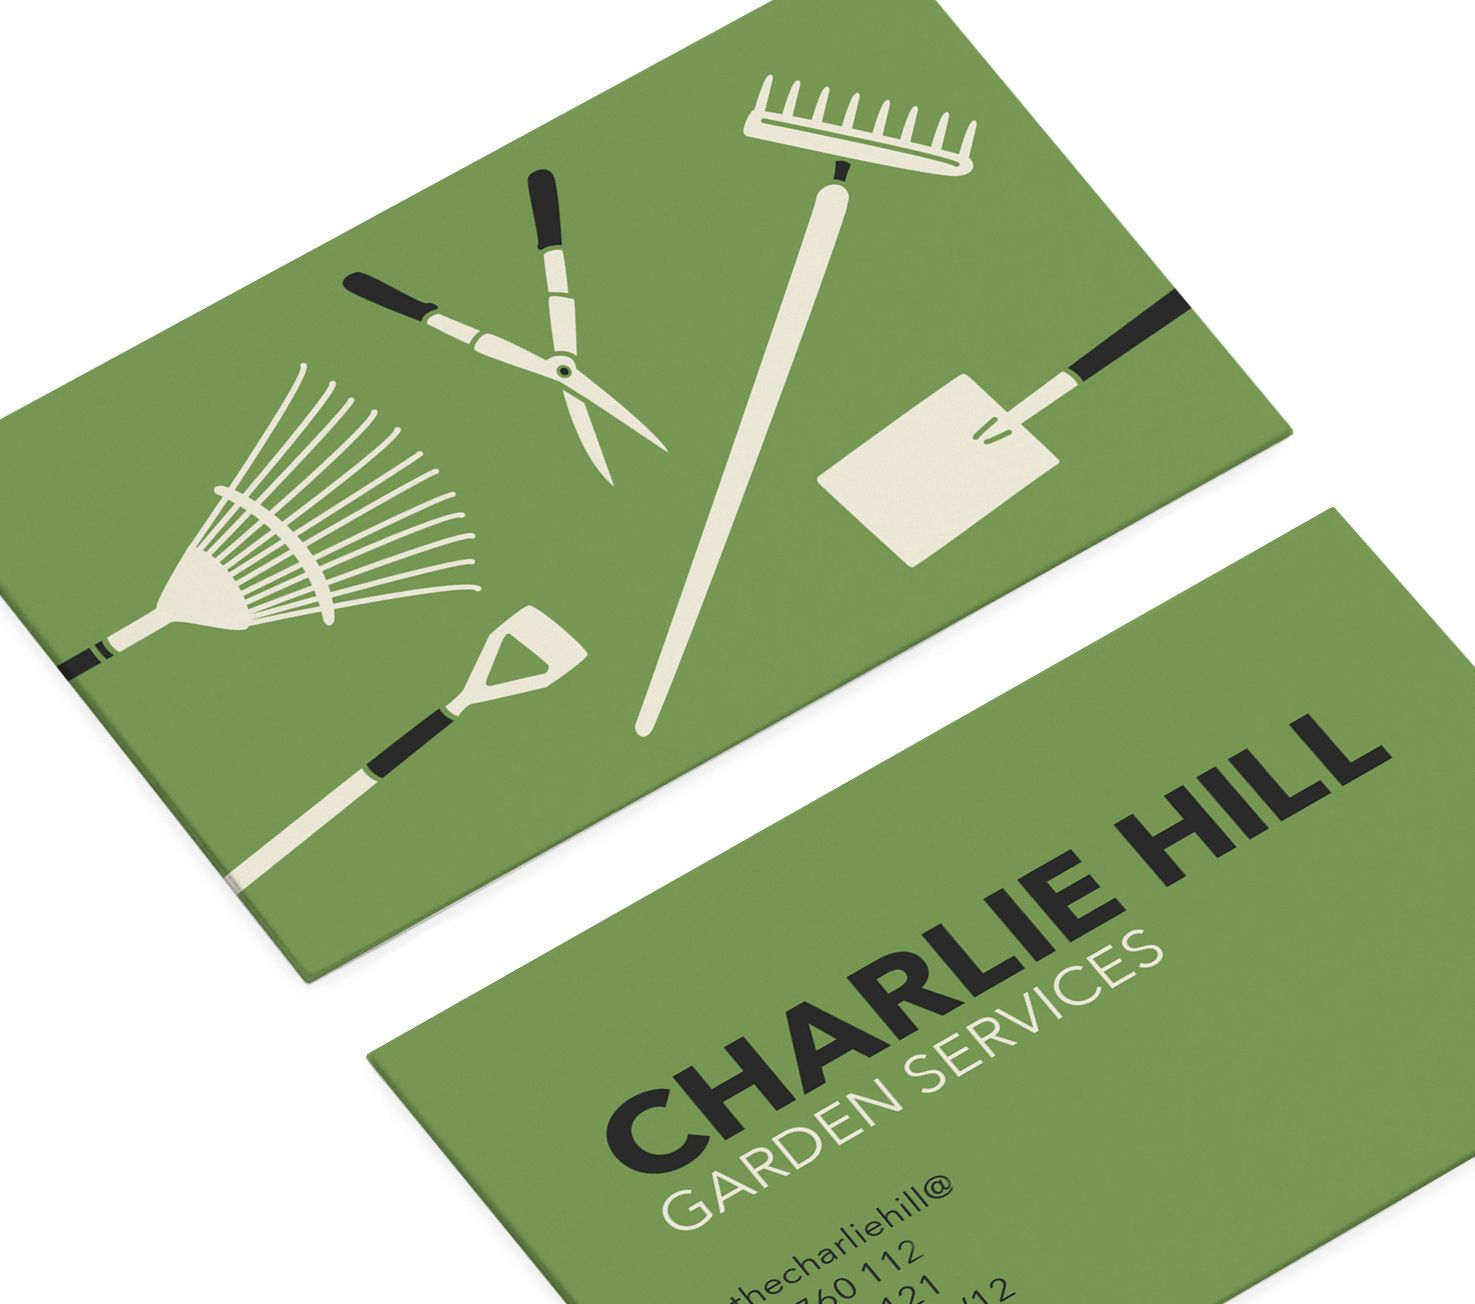 business cards for gardening business by small dots  smalldots co uk